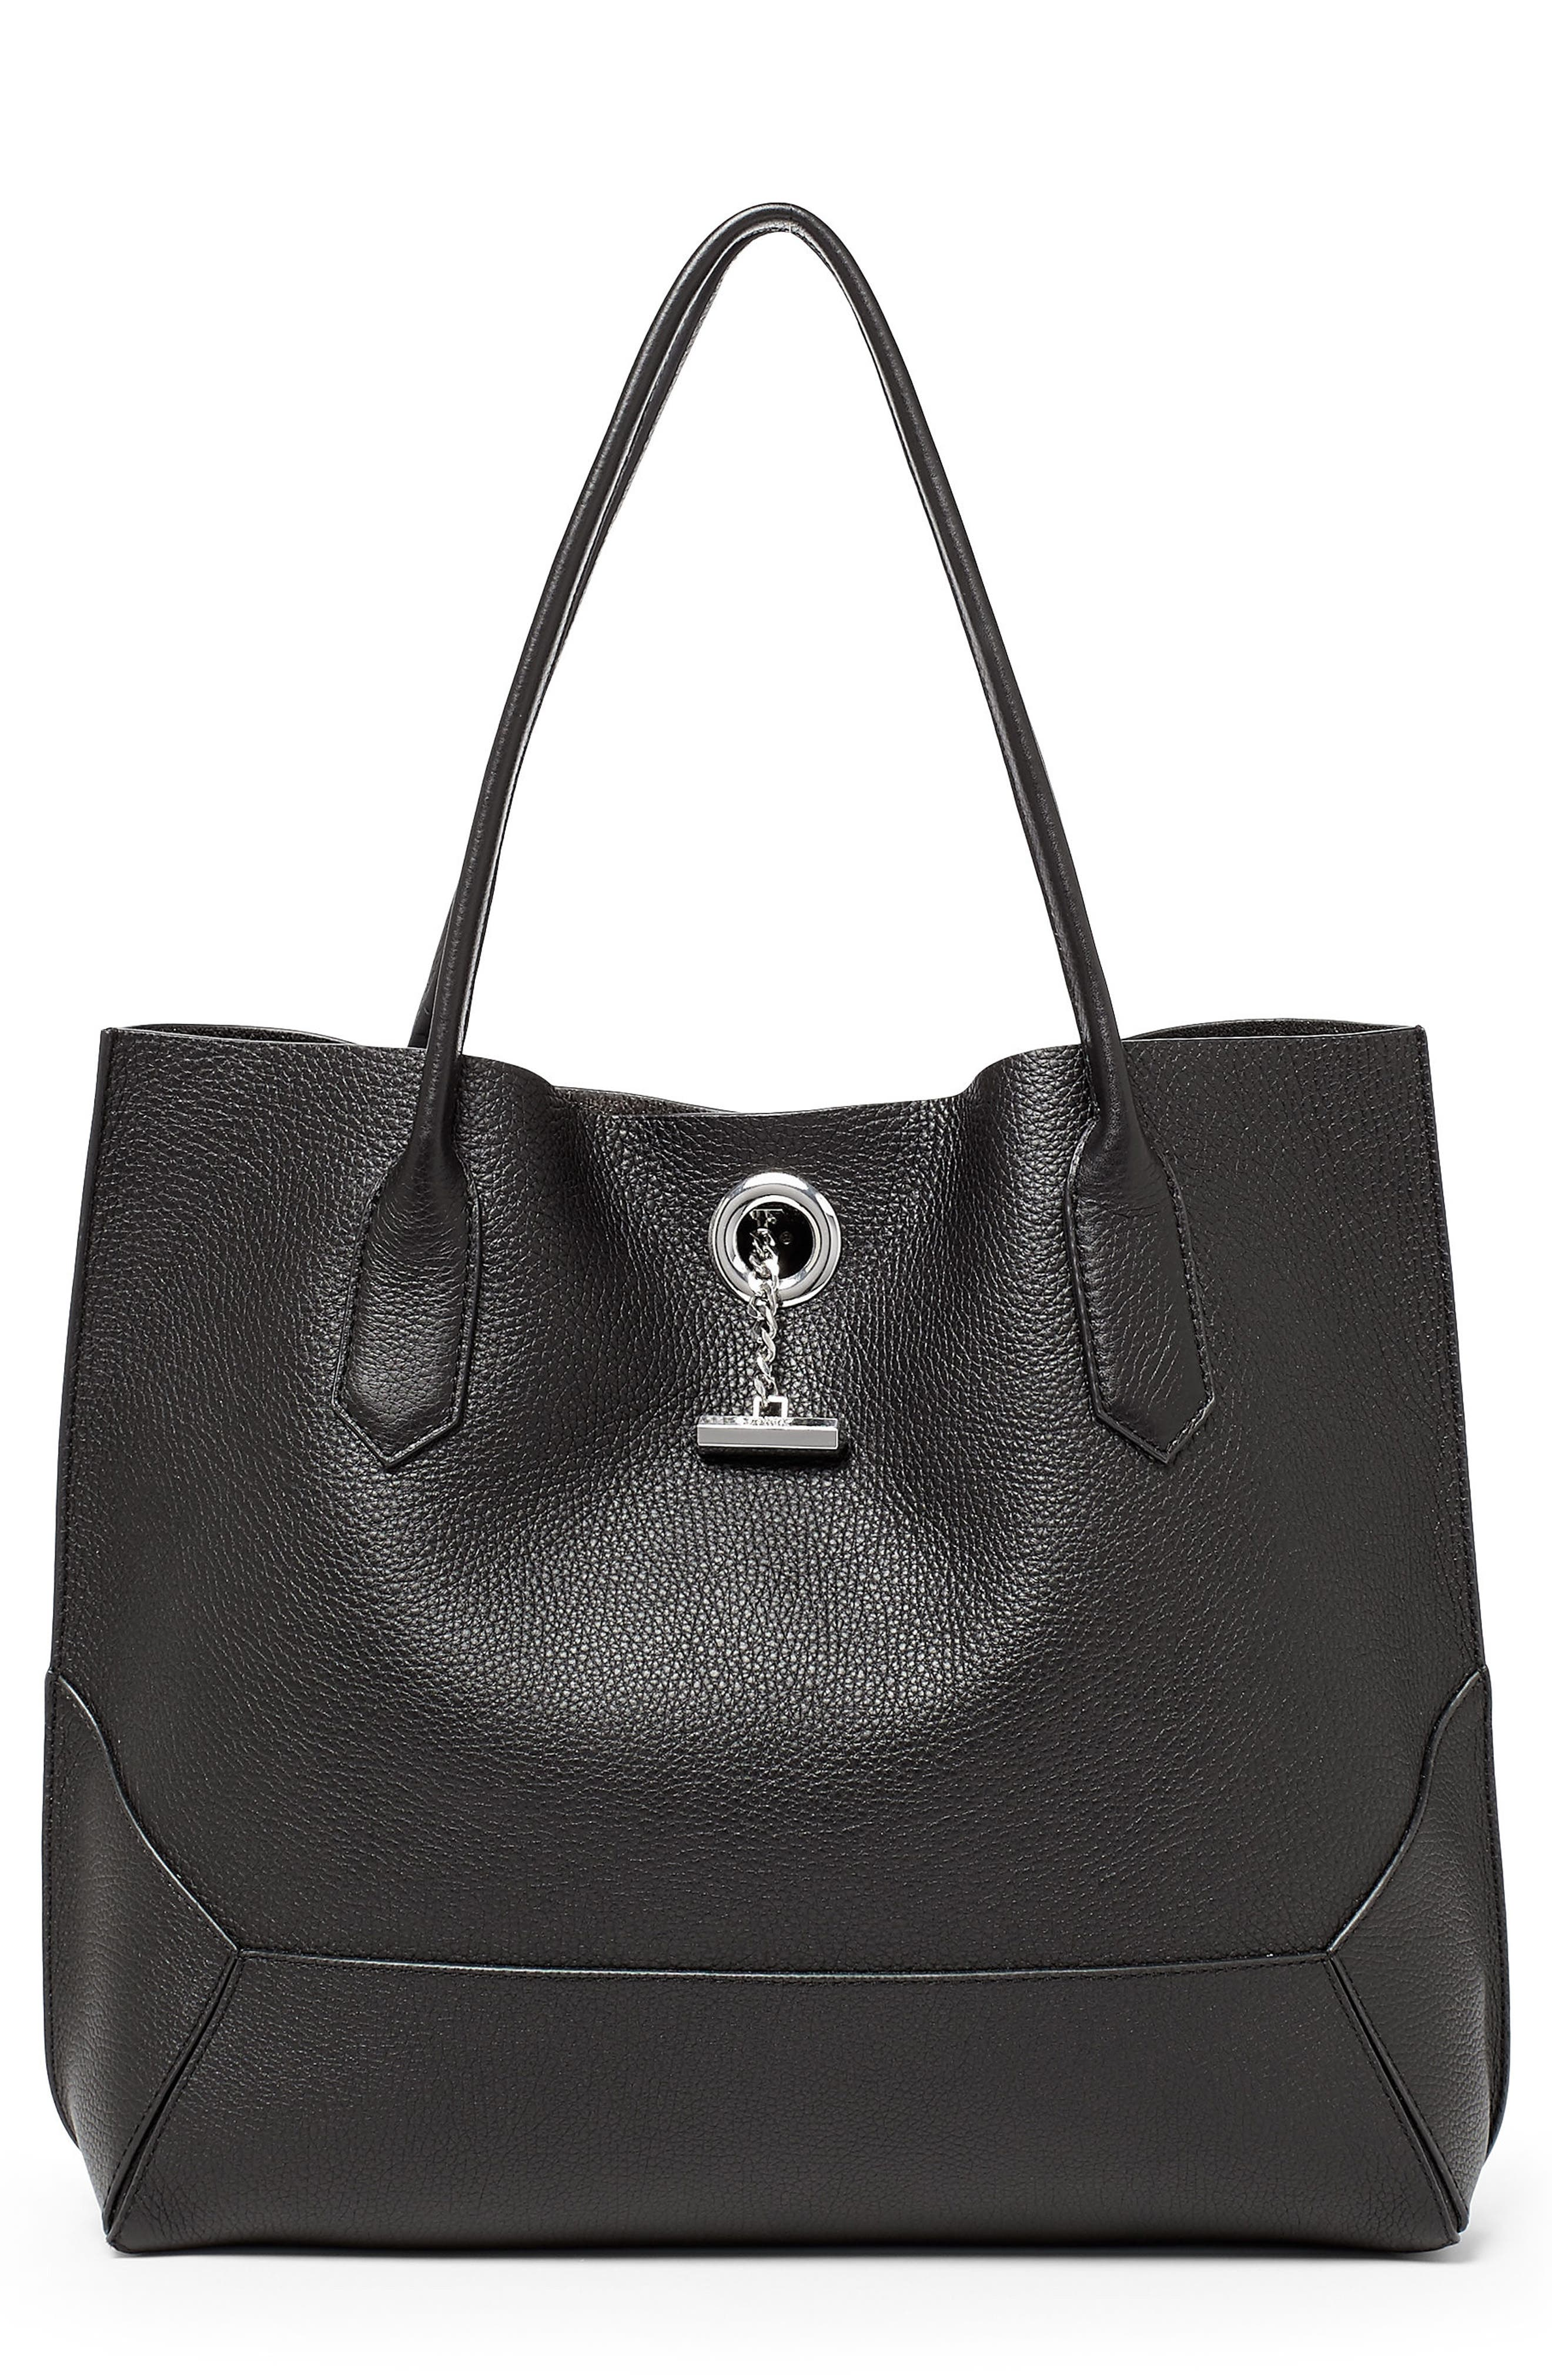 Waverly Leather Tote,                         Main,                         color, 001